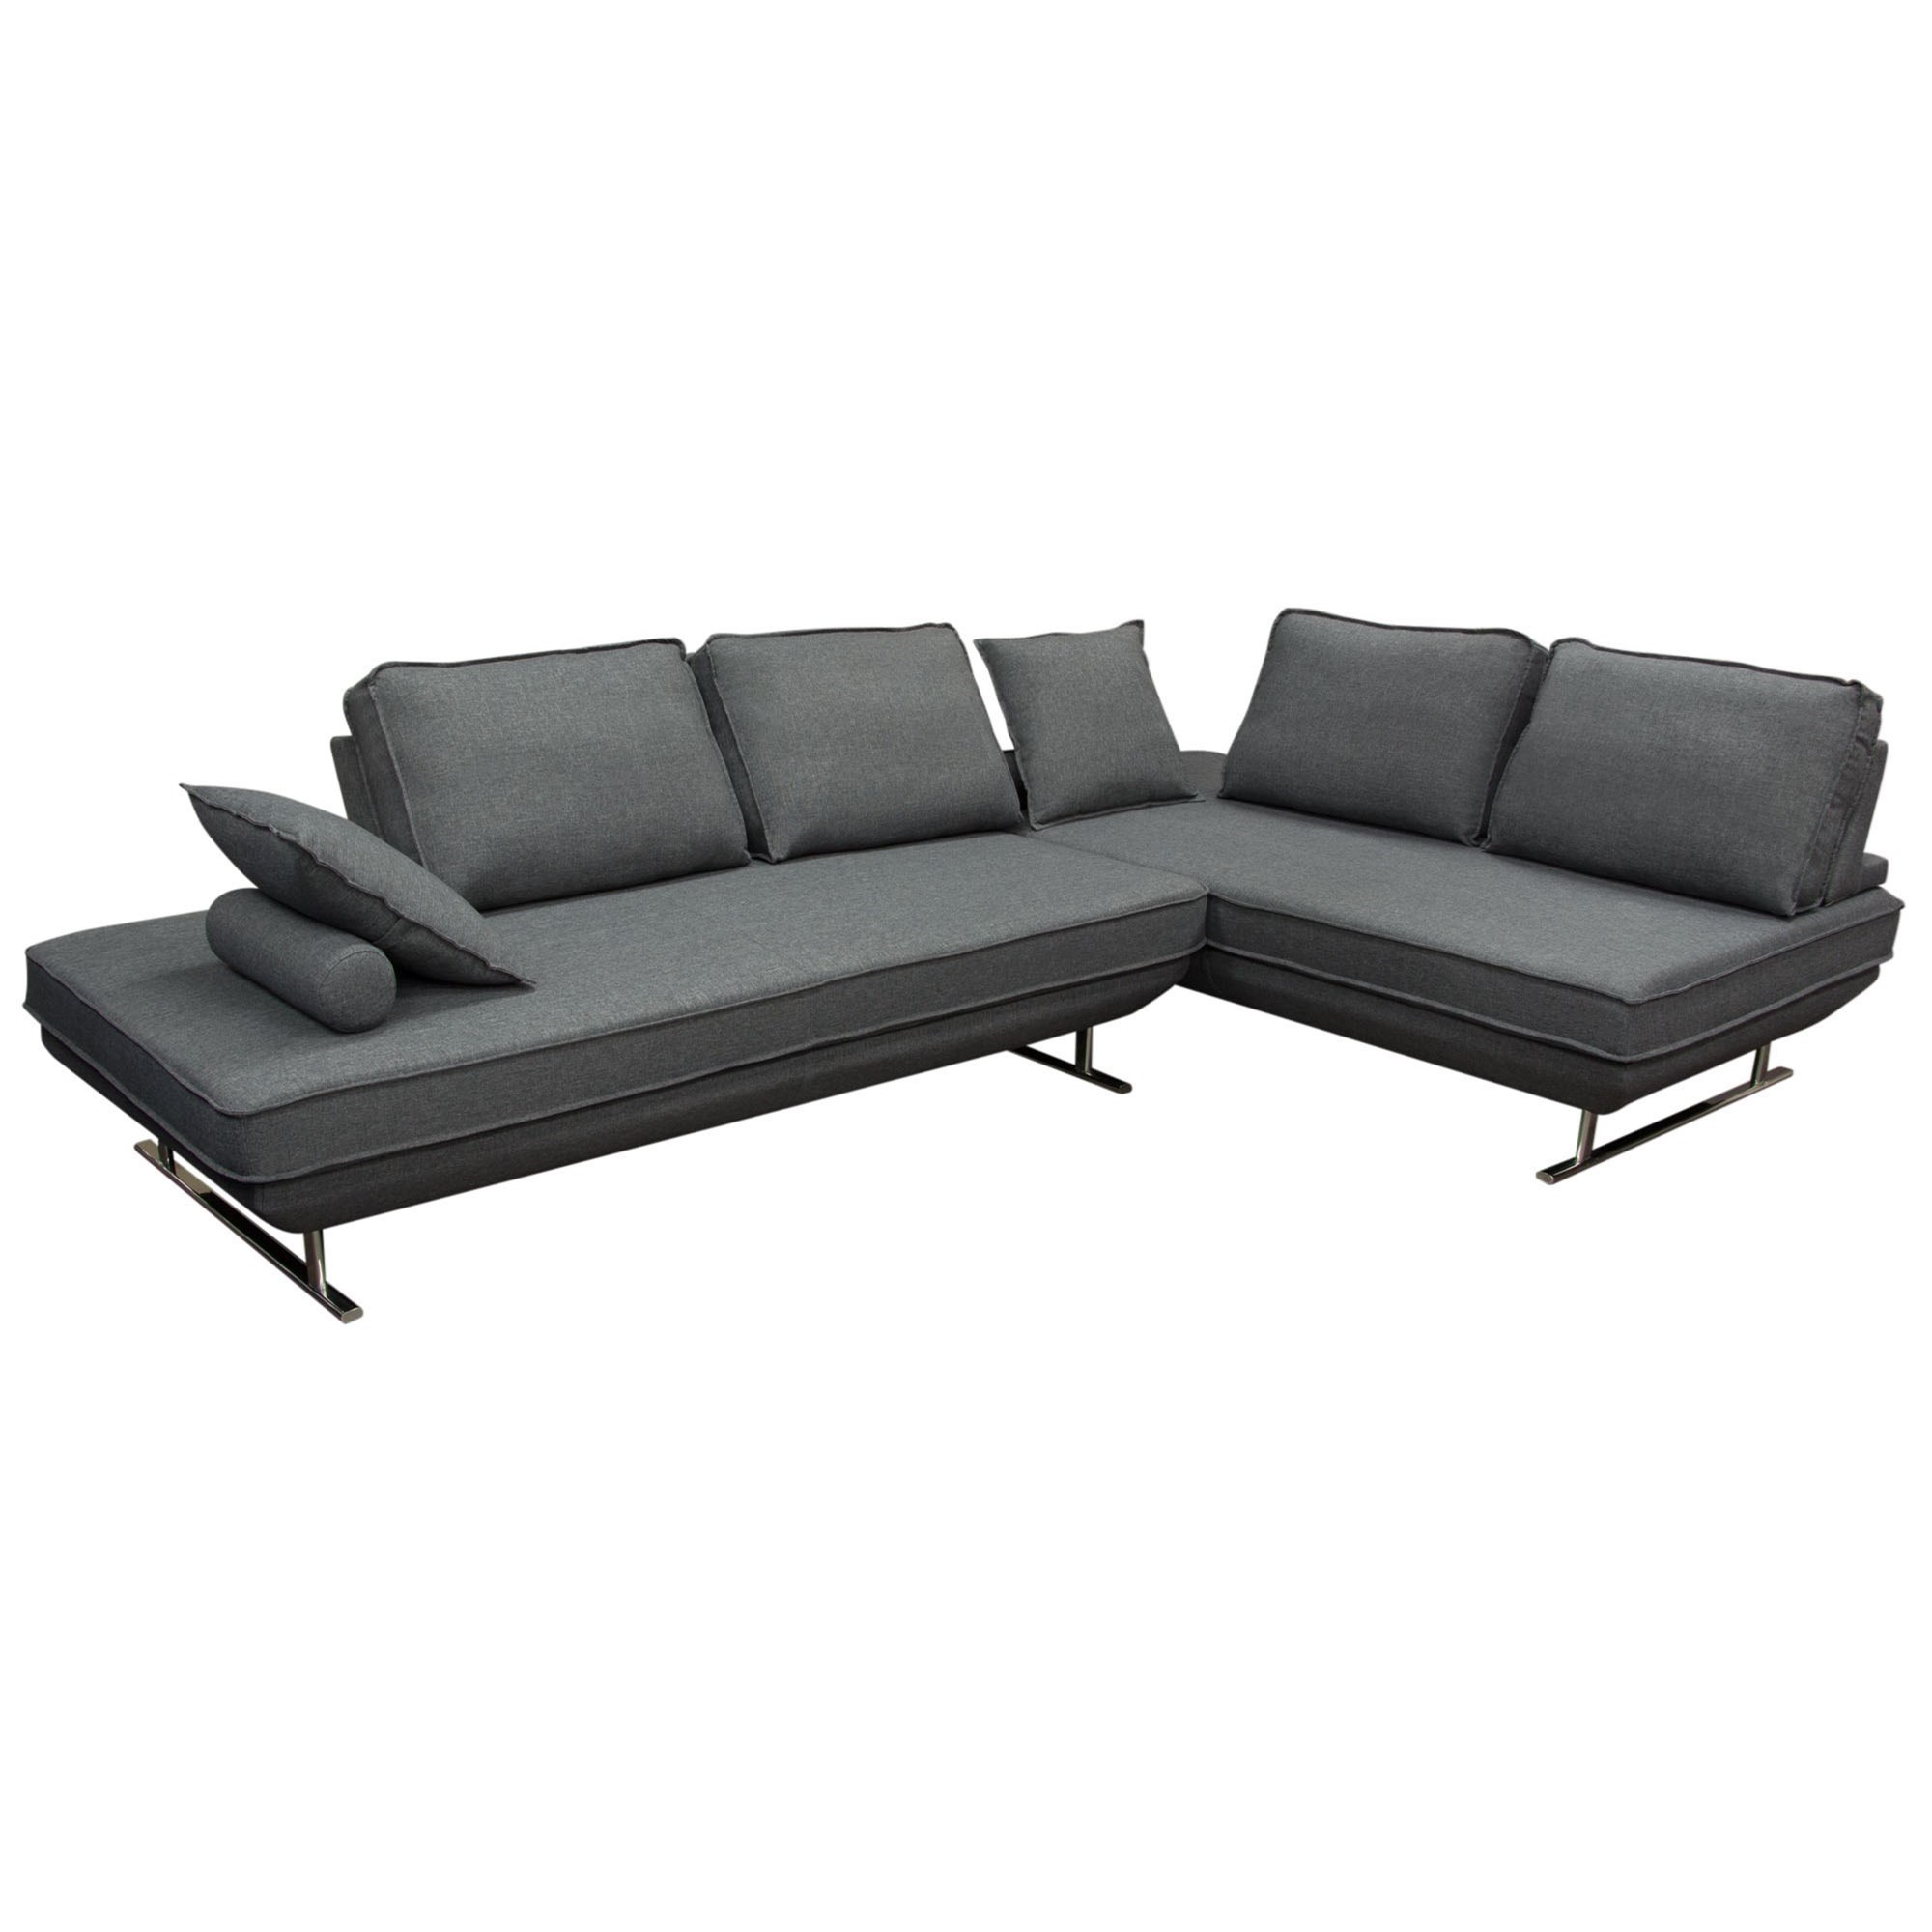 Genial Diamond Sofa DolceLounger Sectional ...